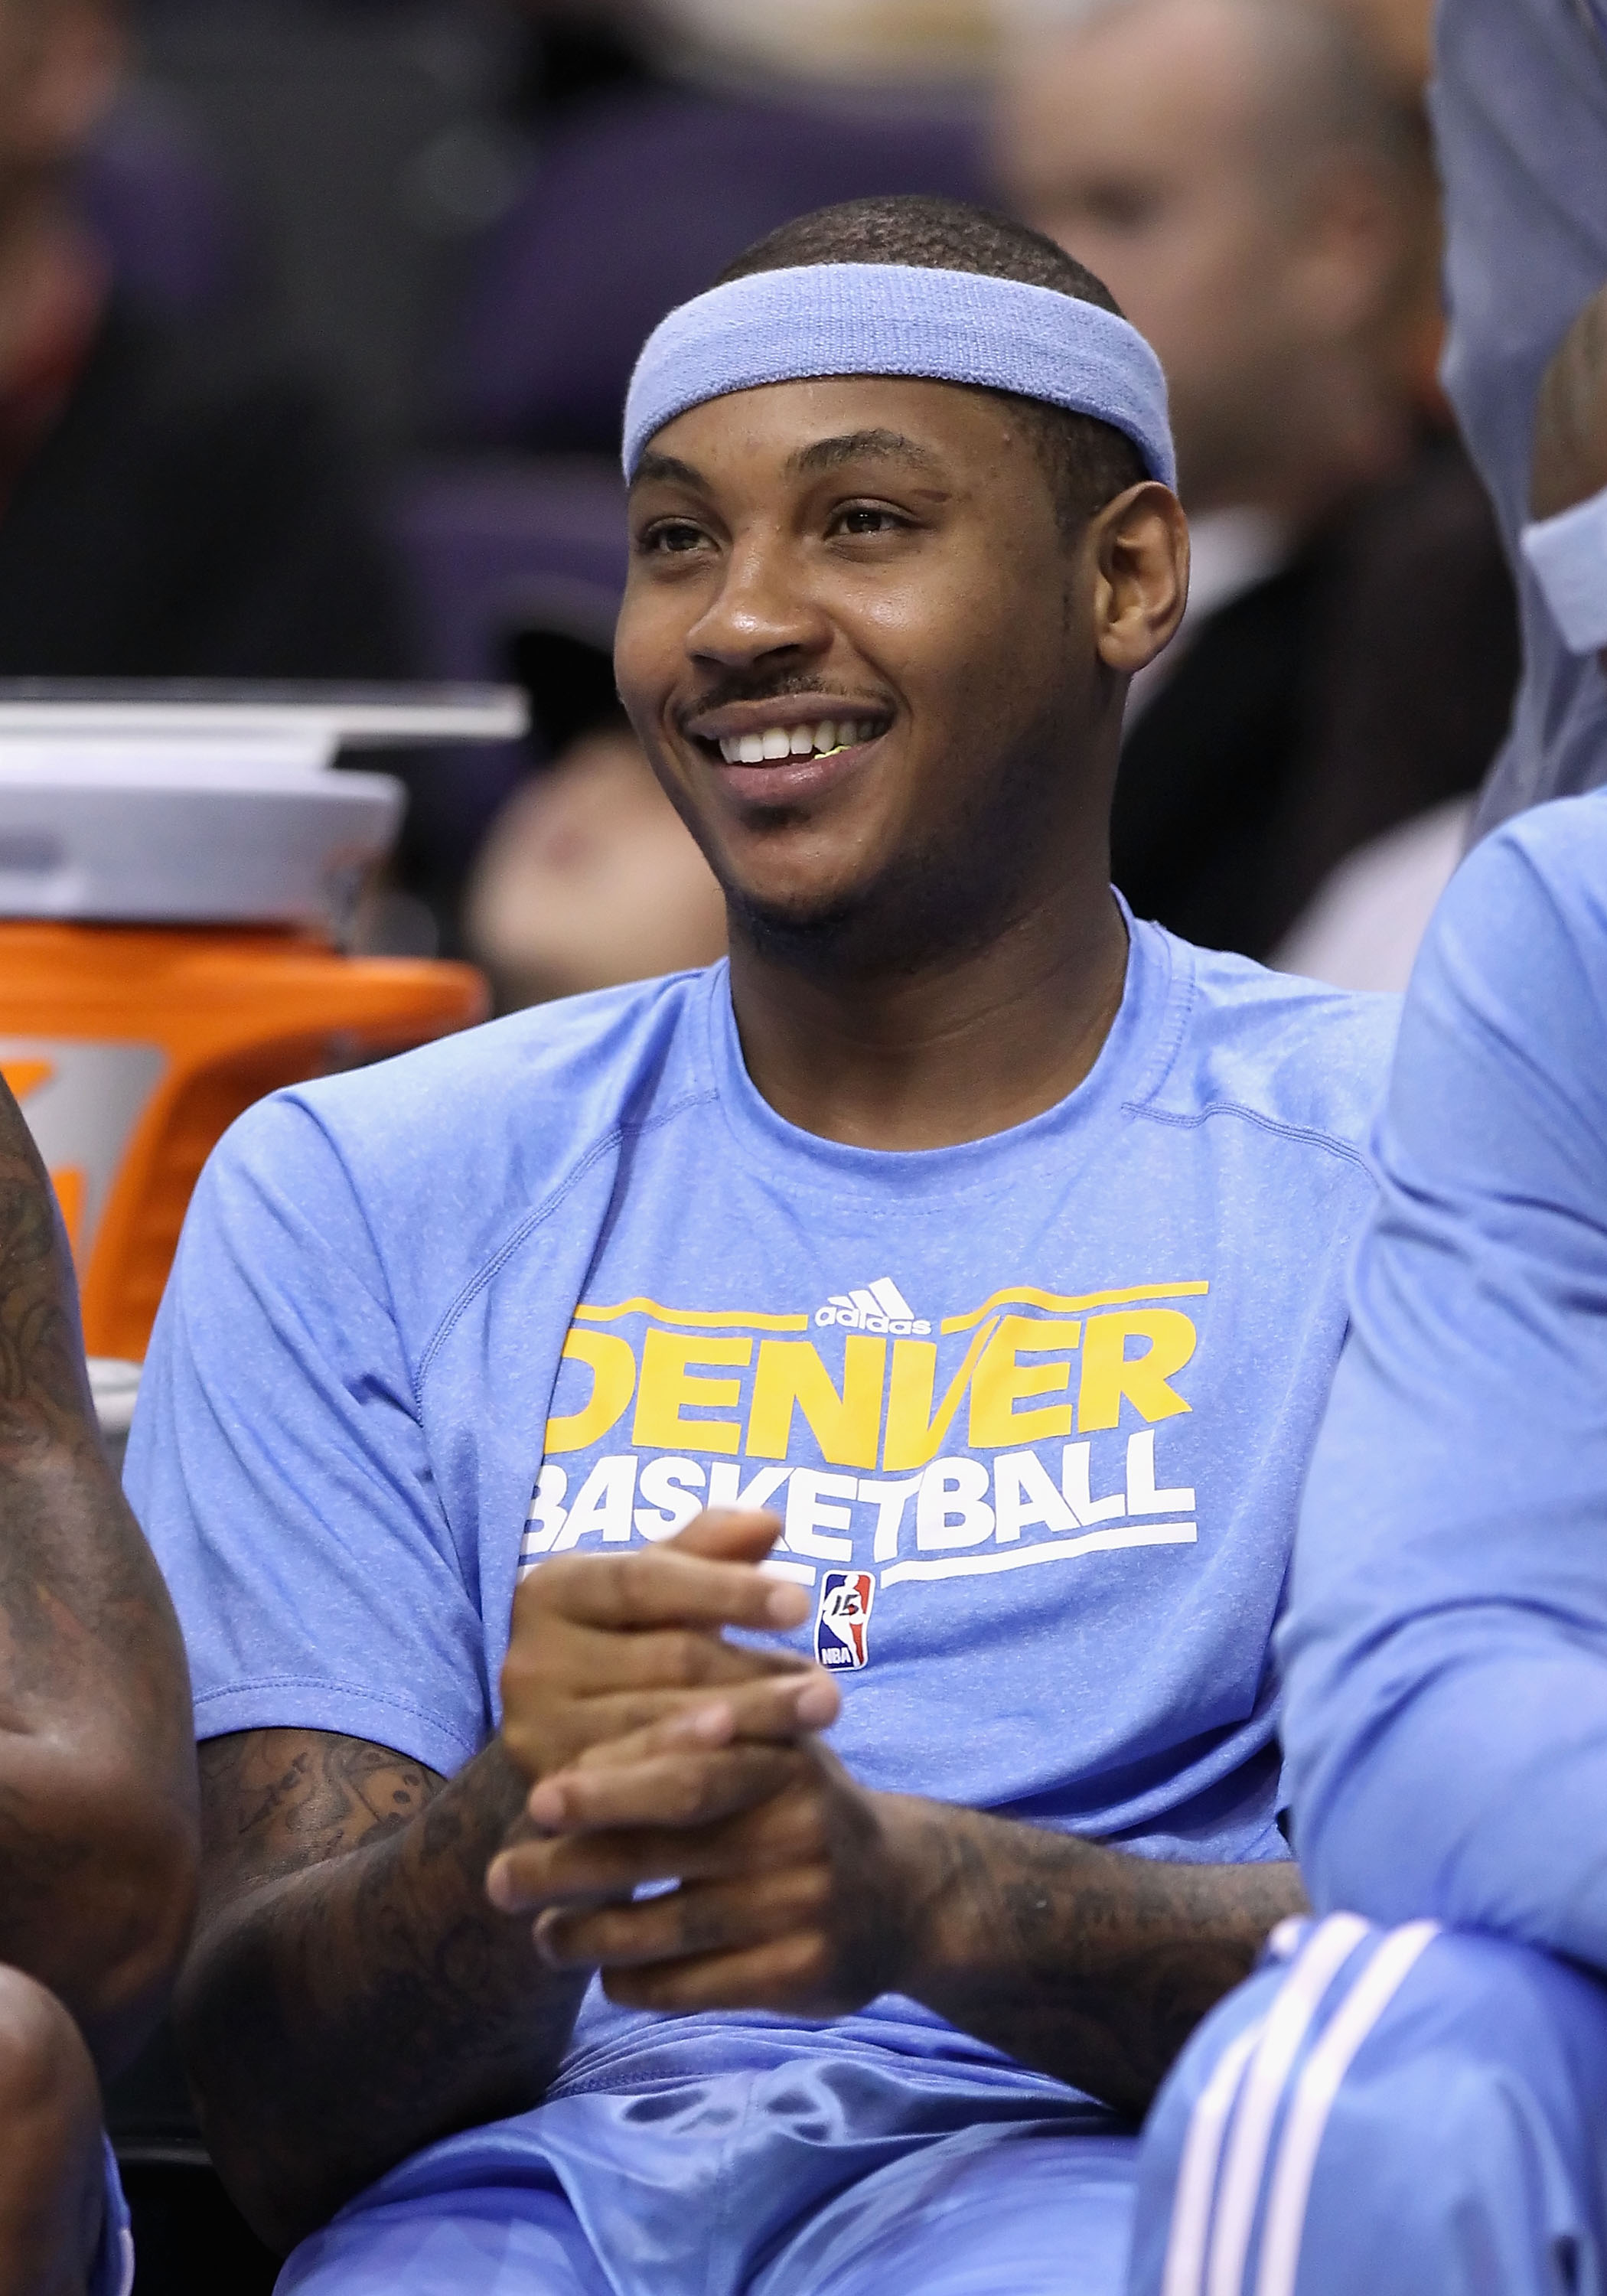 PHOENIX - OCTOBER 22:  Carmelo Anthony #15 of the Denver Nuggets smiles on the bench during the preseason NBA game against the Phoenix Suns at US Airways Center on October 22, 2010 in Phoenix, Arizona. NOTE TO USER: User expressly acknowledges and agrees